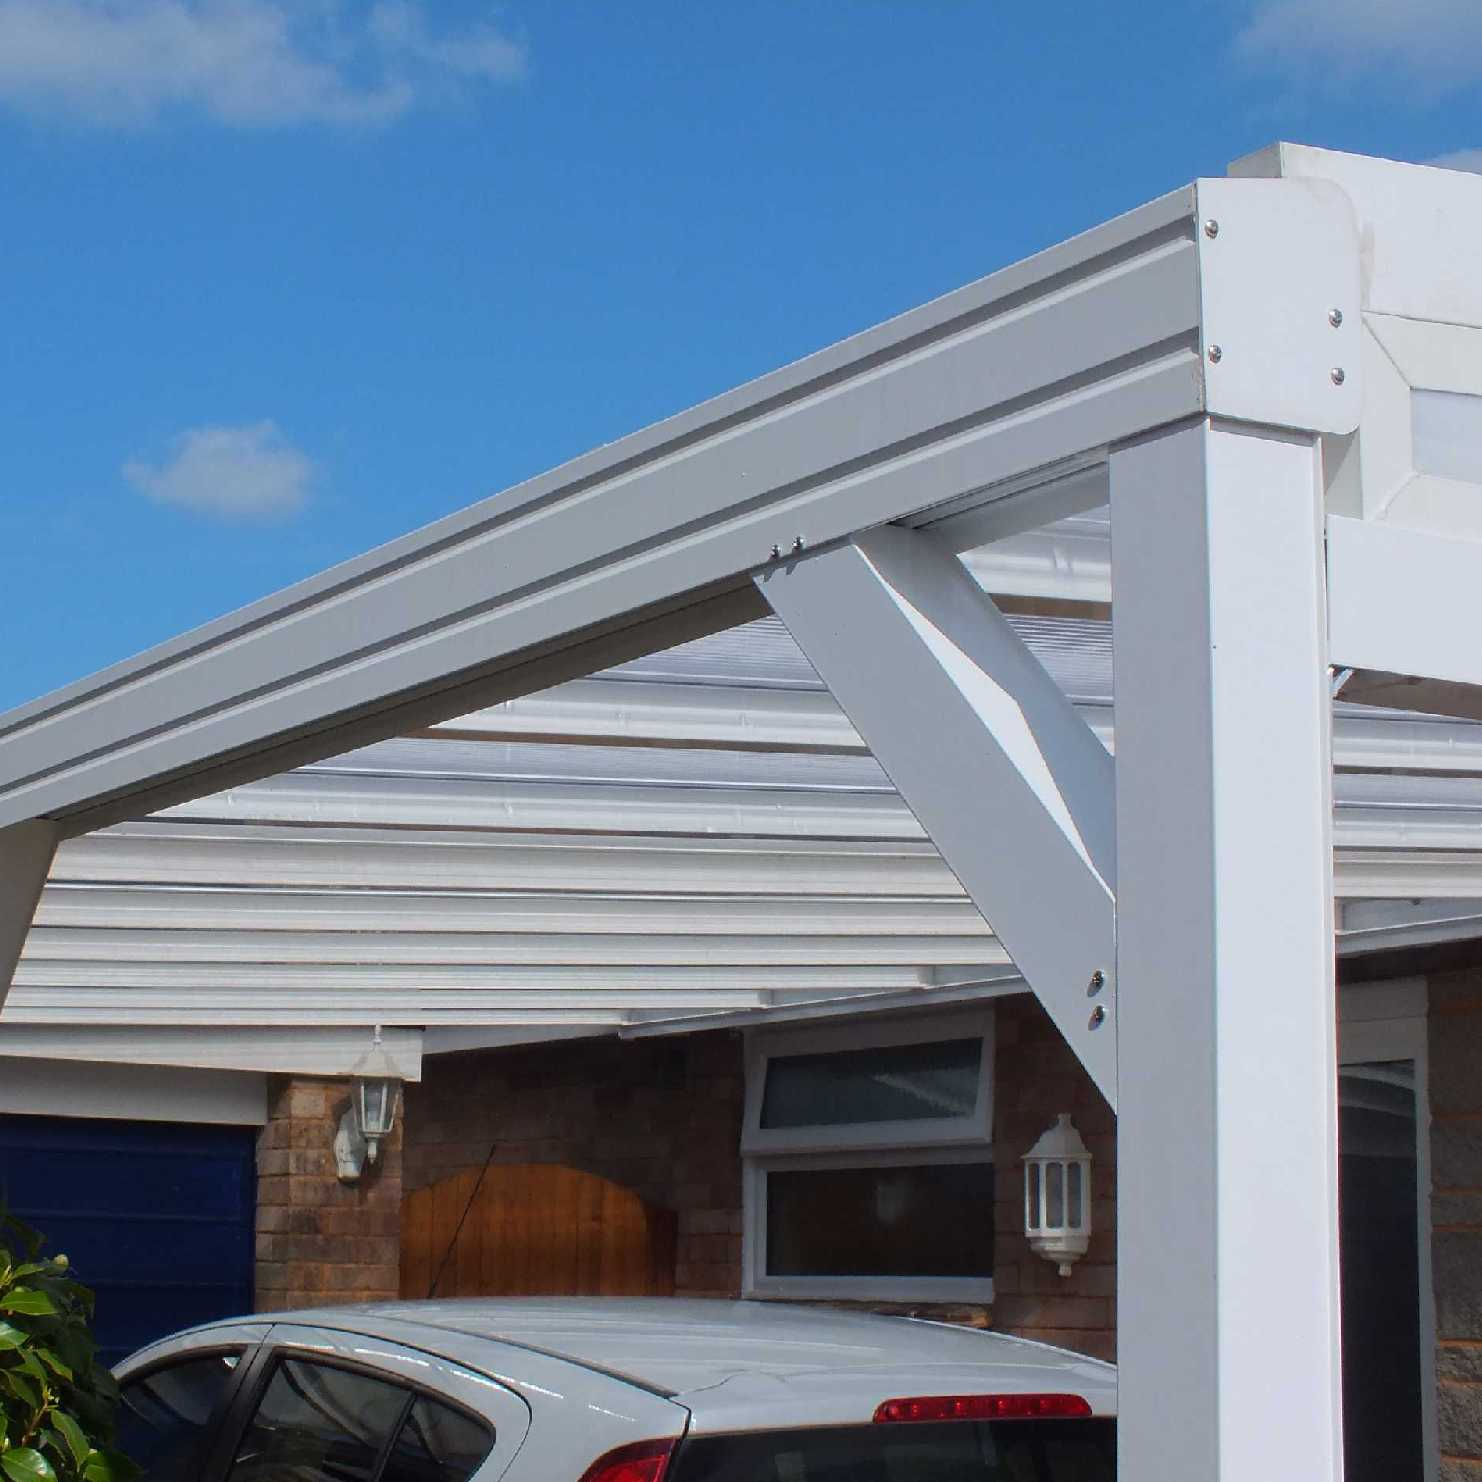 Great deals on Omega Smart White Lean-To Canopy with 16mm Polycarbonate Glazing - 5.2m (W) x 4.5m (P), (3) Supporting Posts